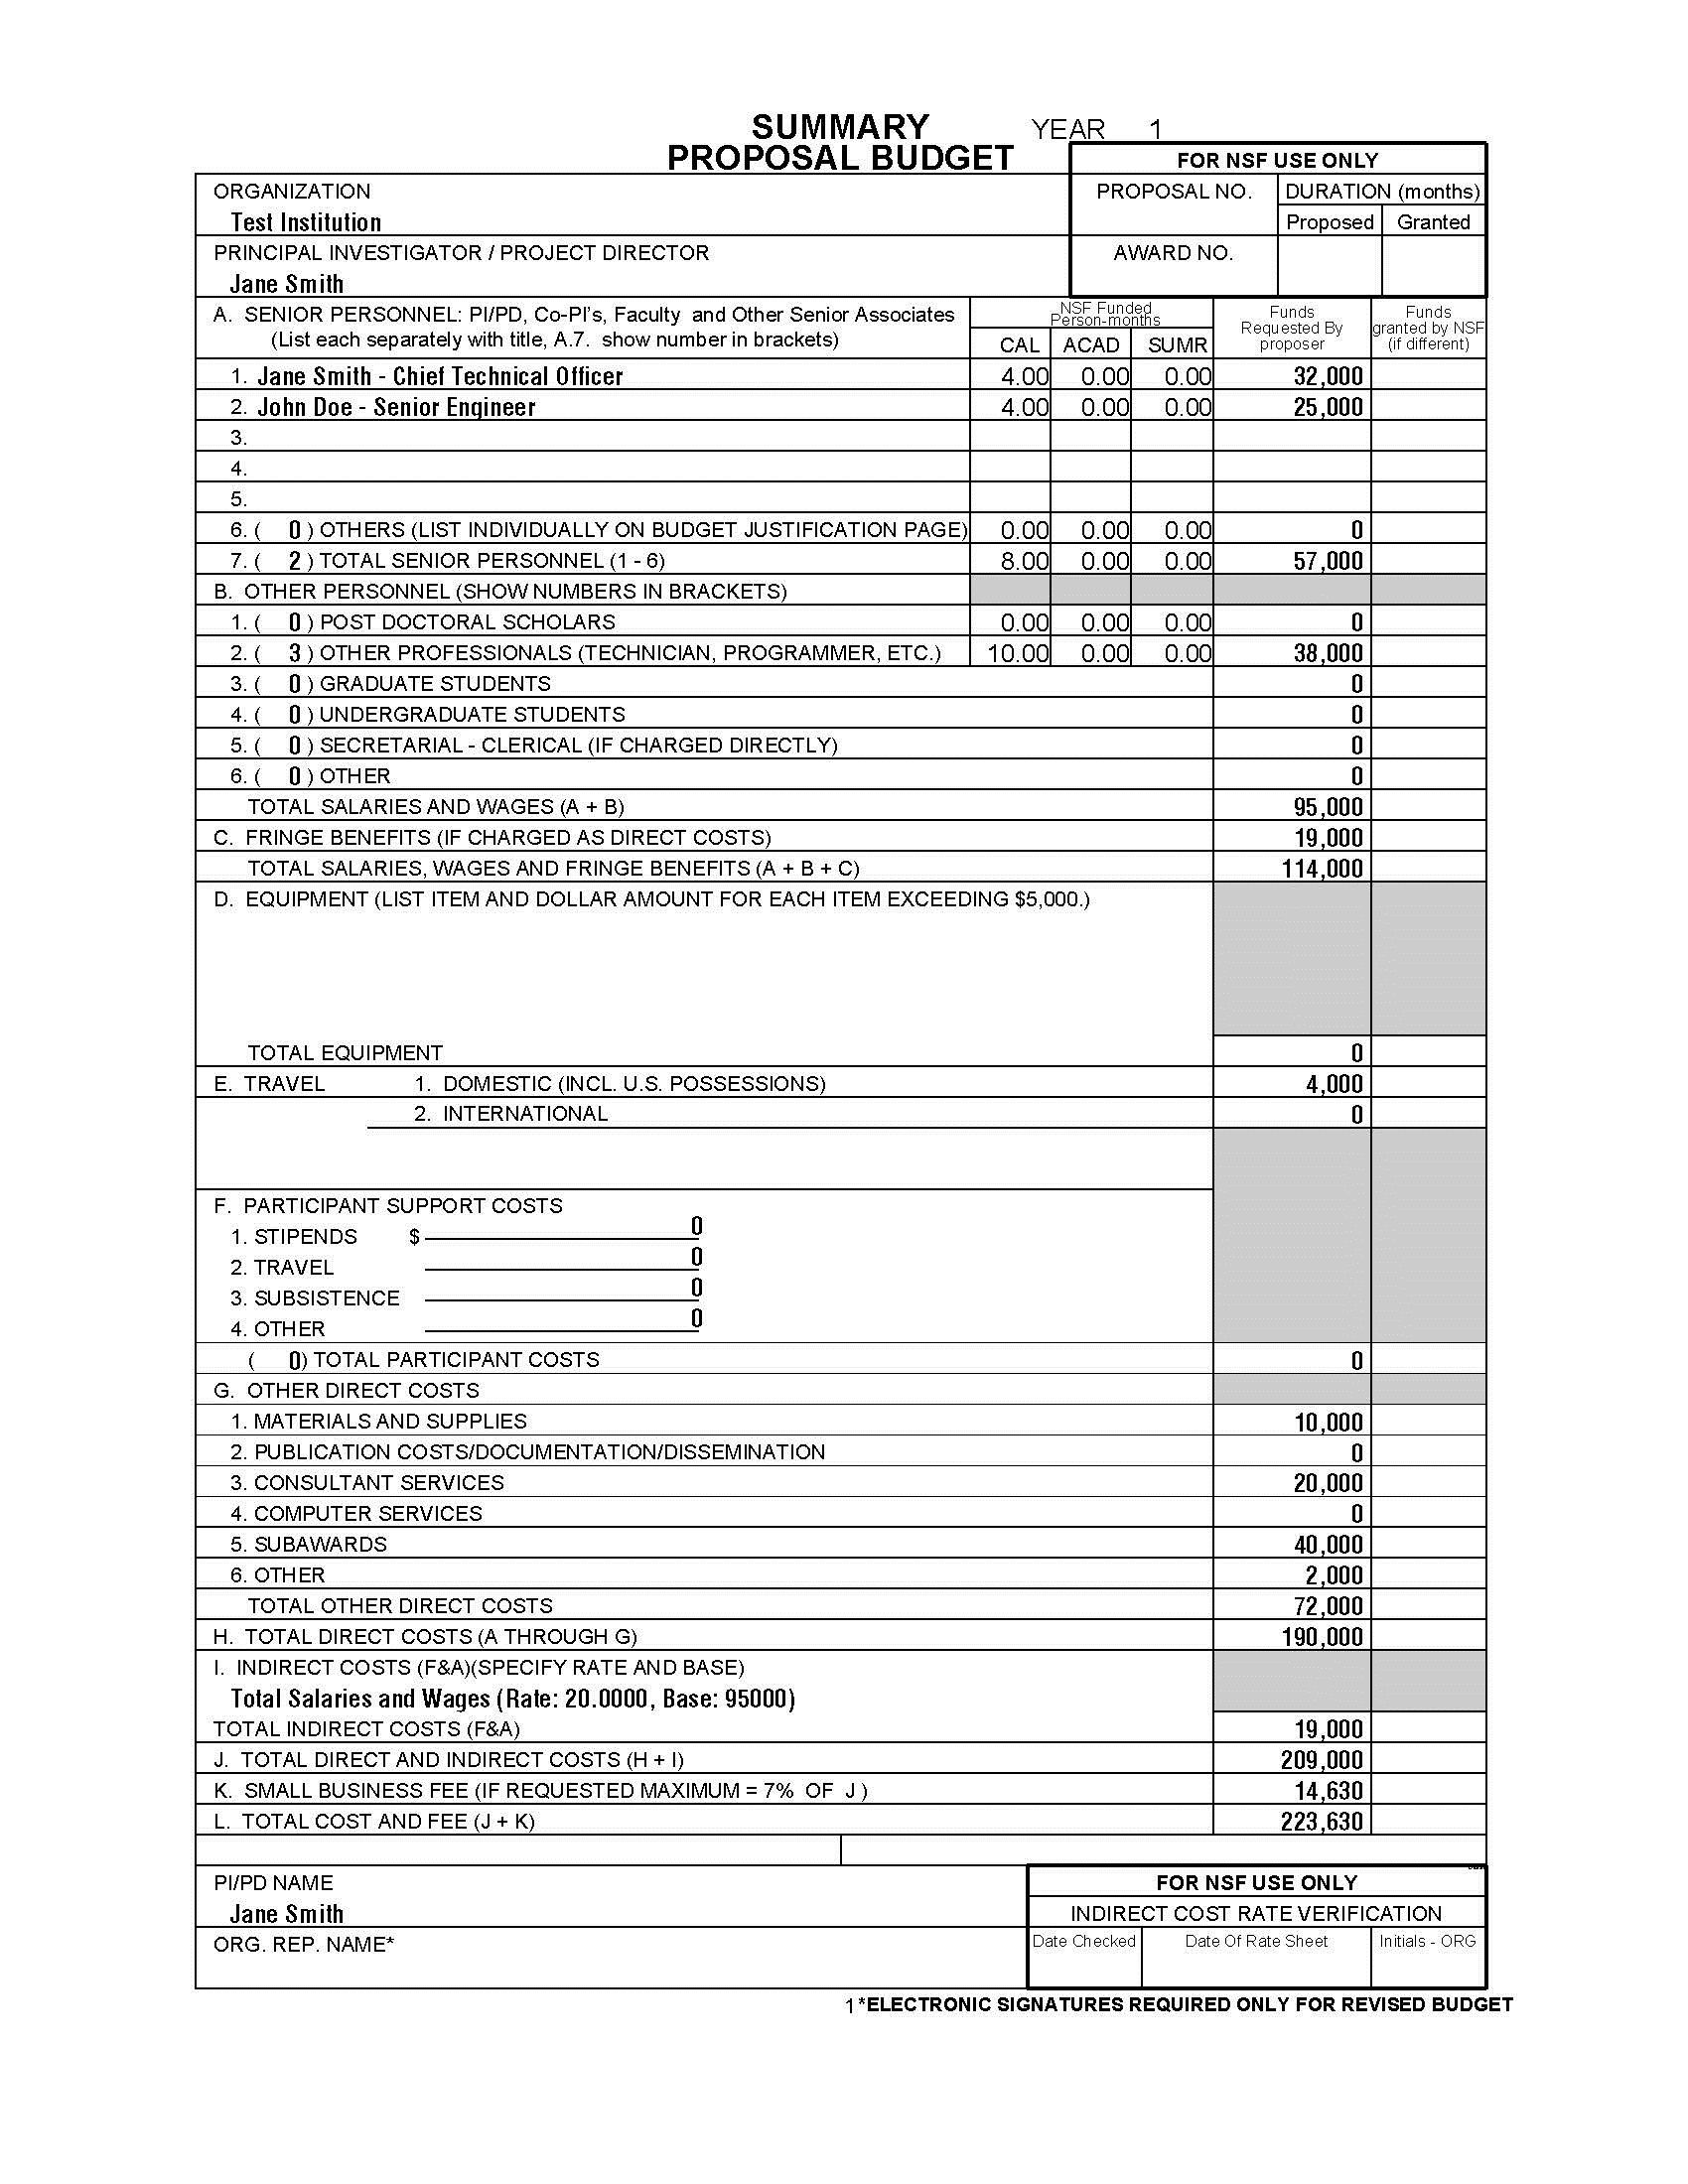 002 Breathtaking Line Item Budget Sample High Definition  Church For Grant Proposal FormatFull